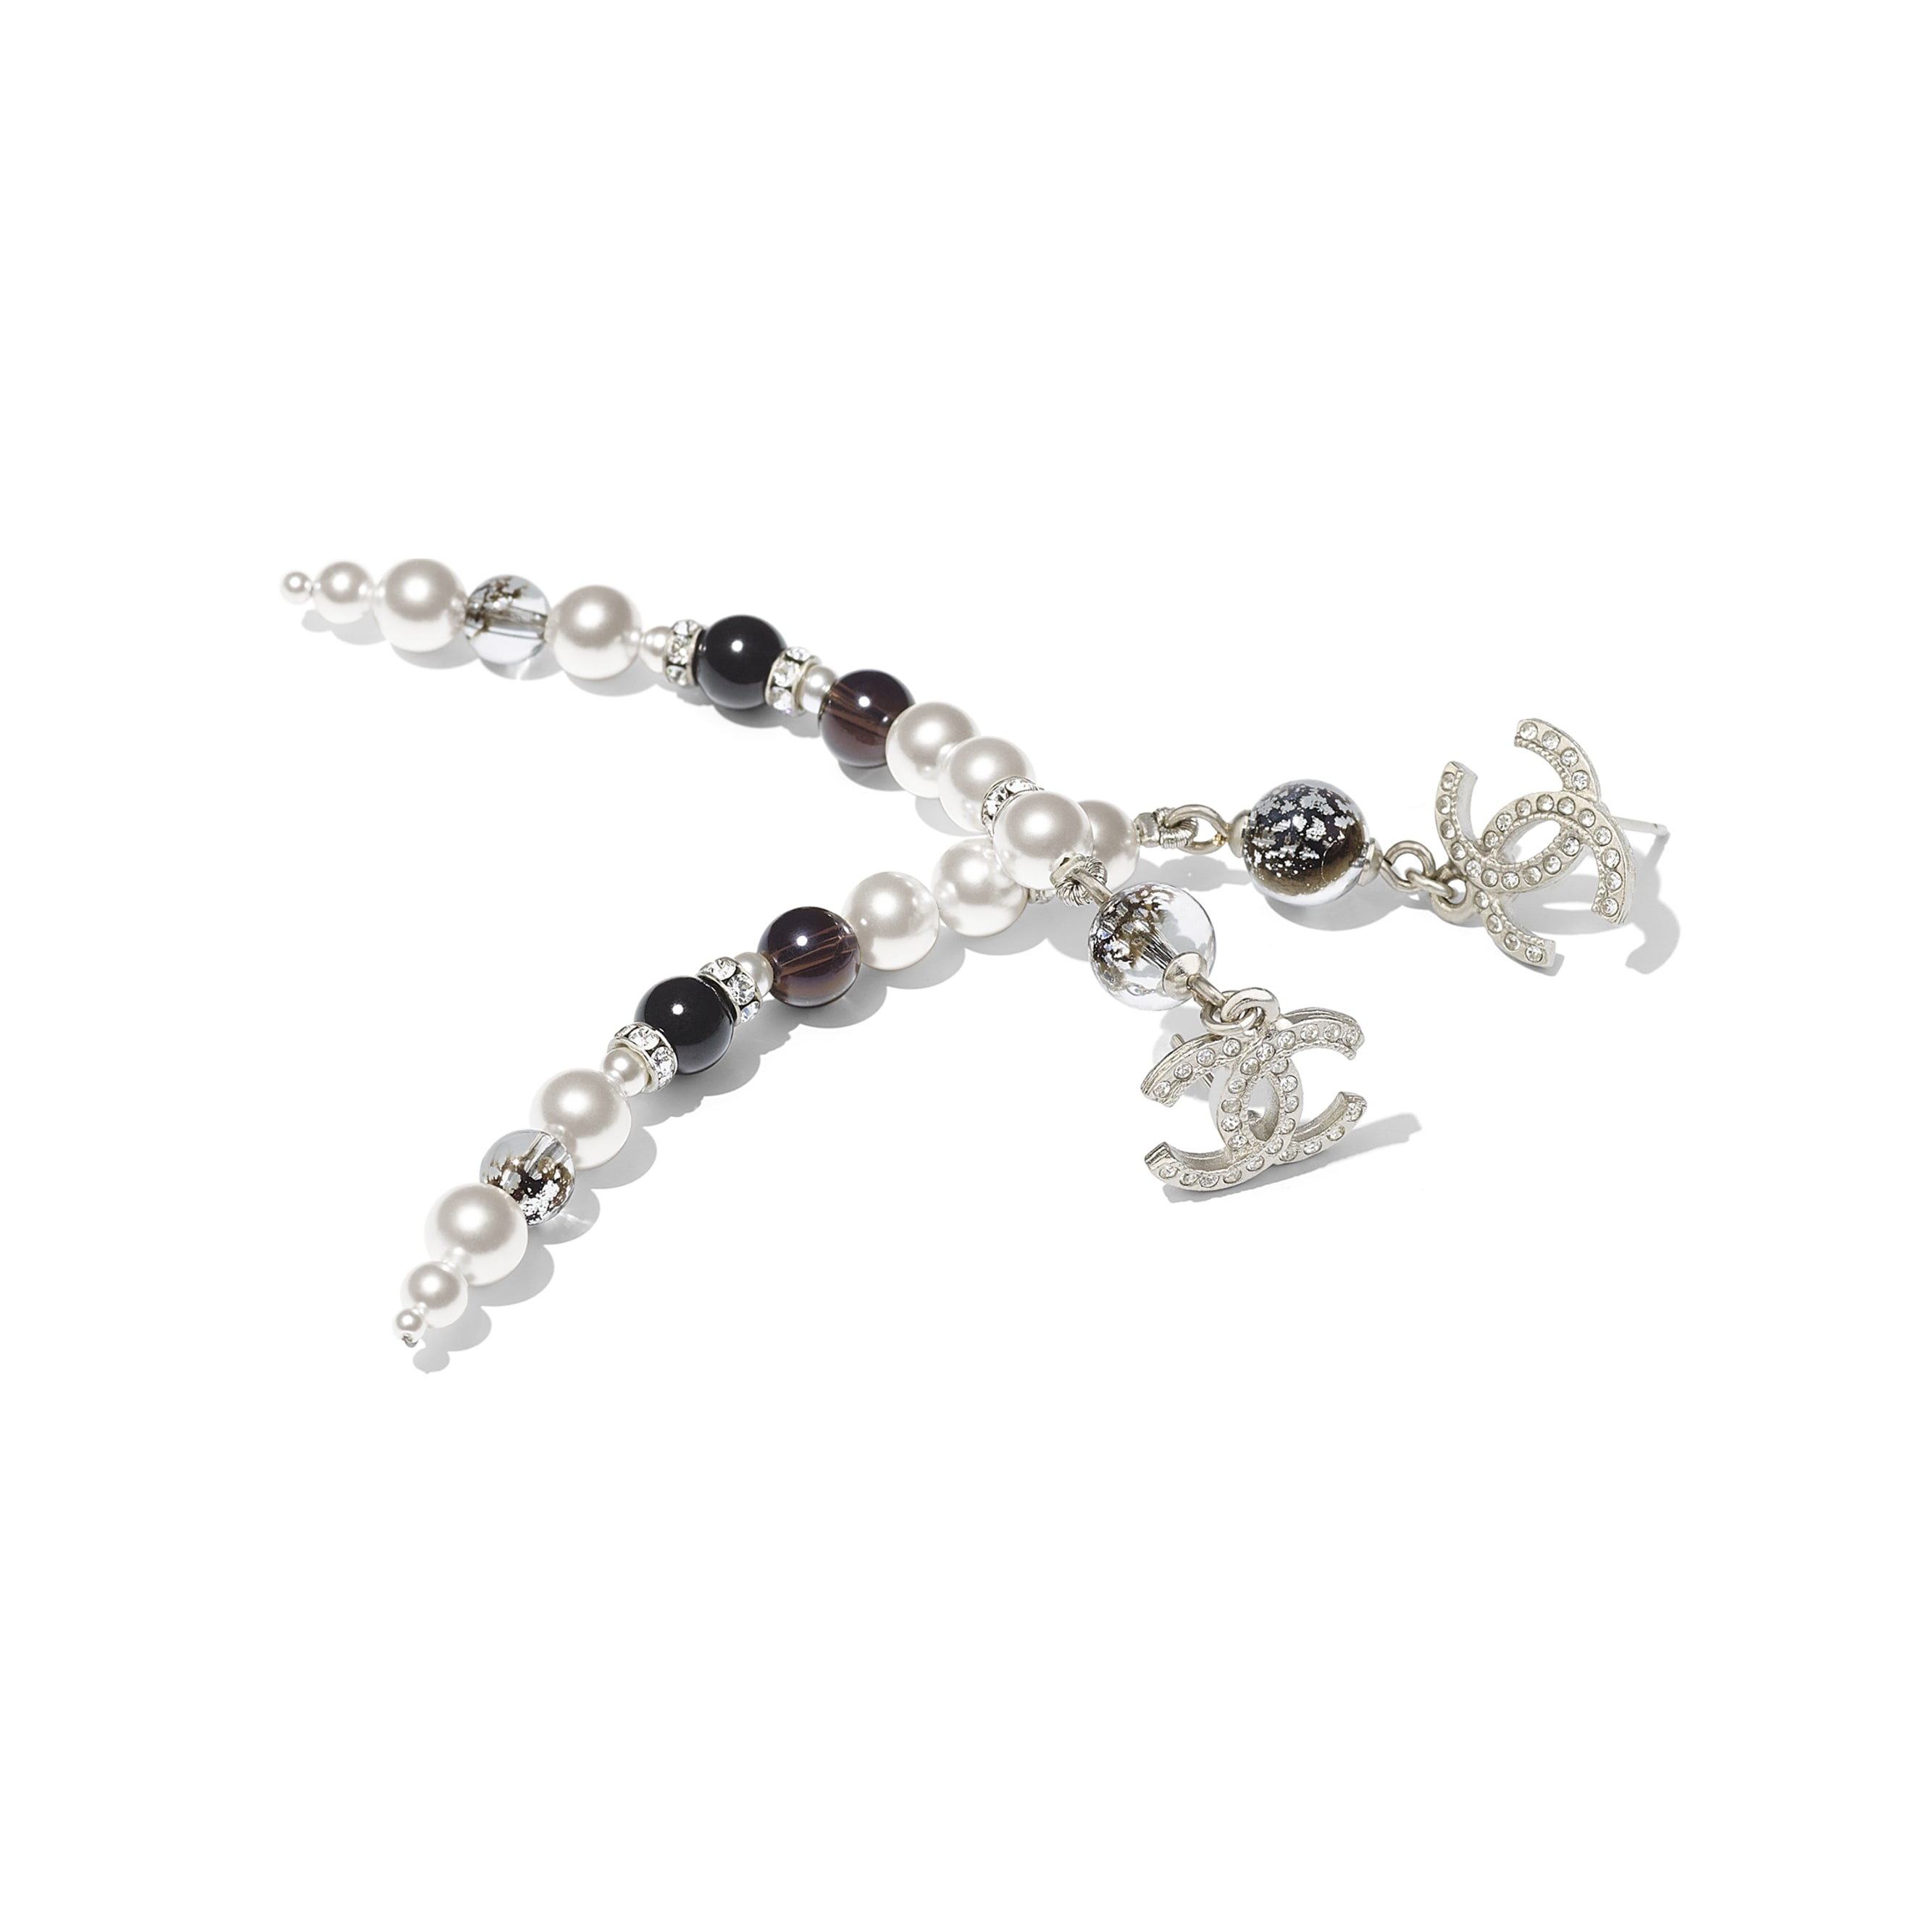 Earrings - Silver, Pearly White, Black & Crystal - Metal, Natural Stones, Glass Pearls & Strass - Alternative view - see standard sized version